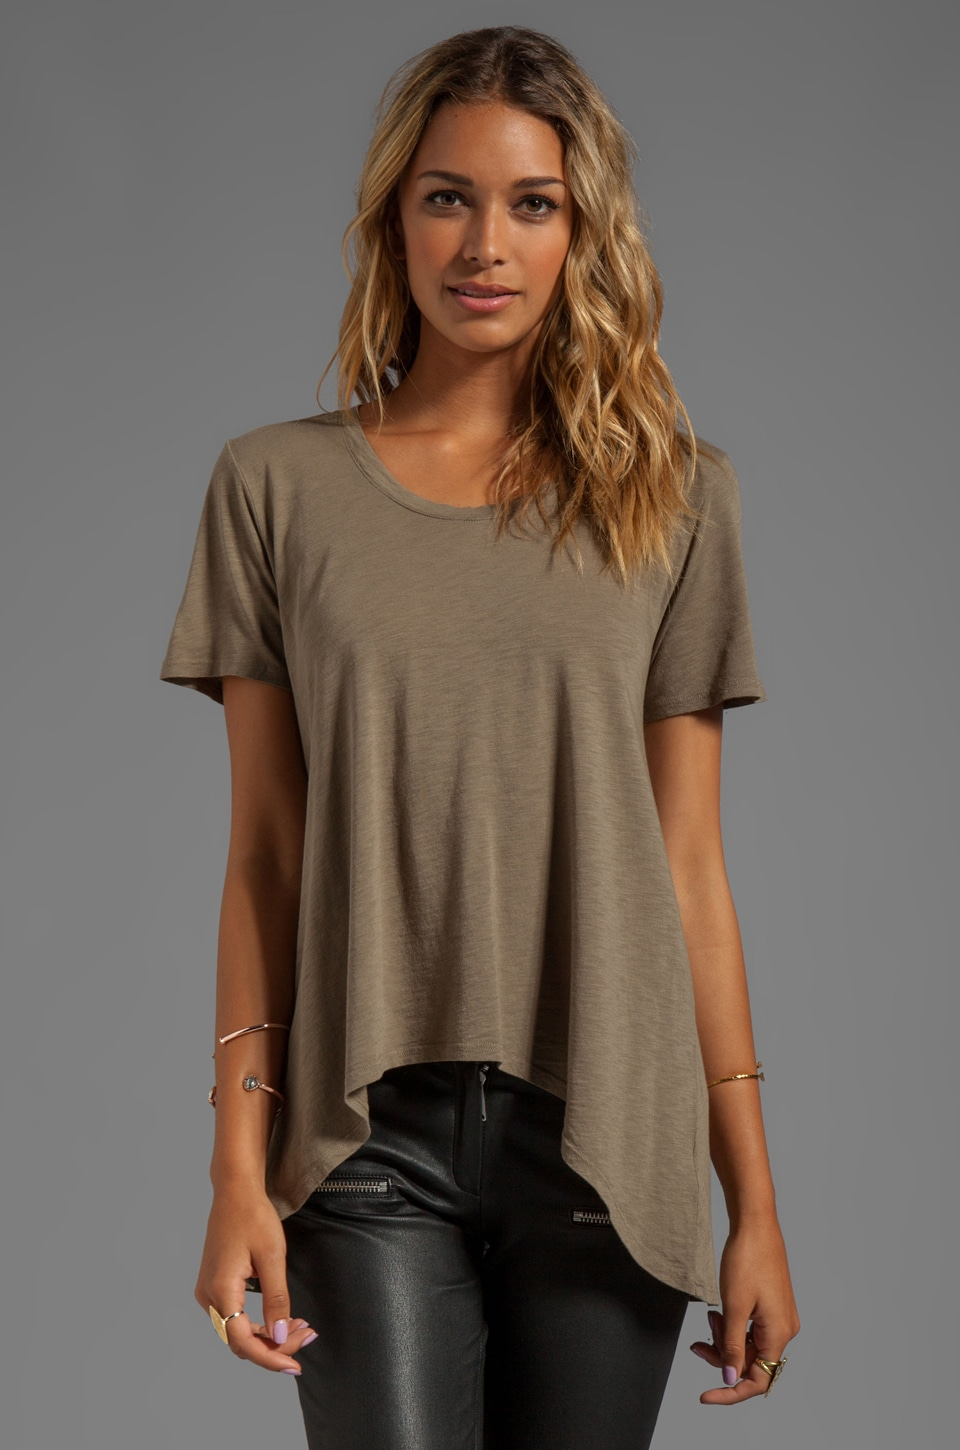 Saint Grace Buddy Oversized Tee in Eco